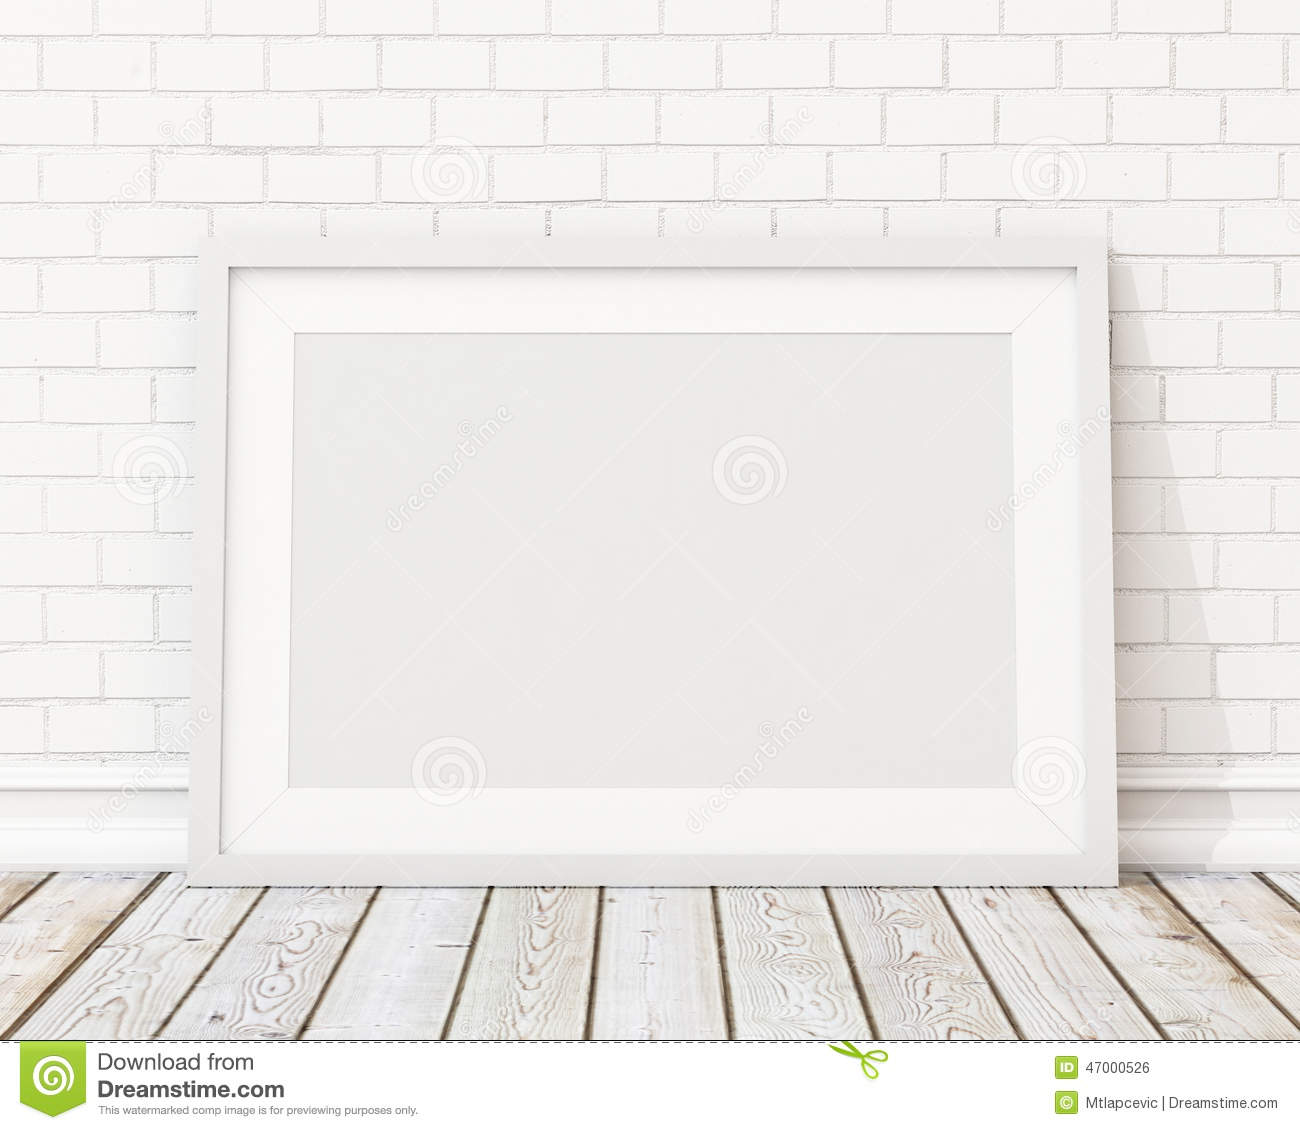 Wall Templates | Mock Up Blank White Horizontal Picture Frame On The White Brick Wall